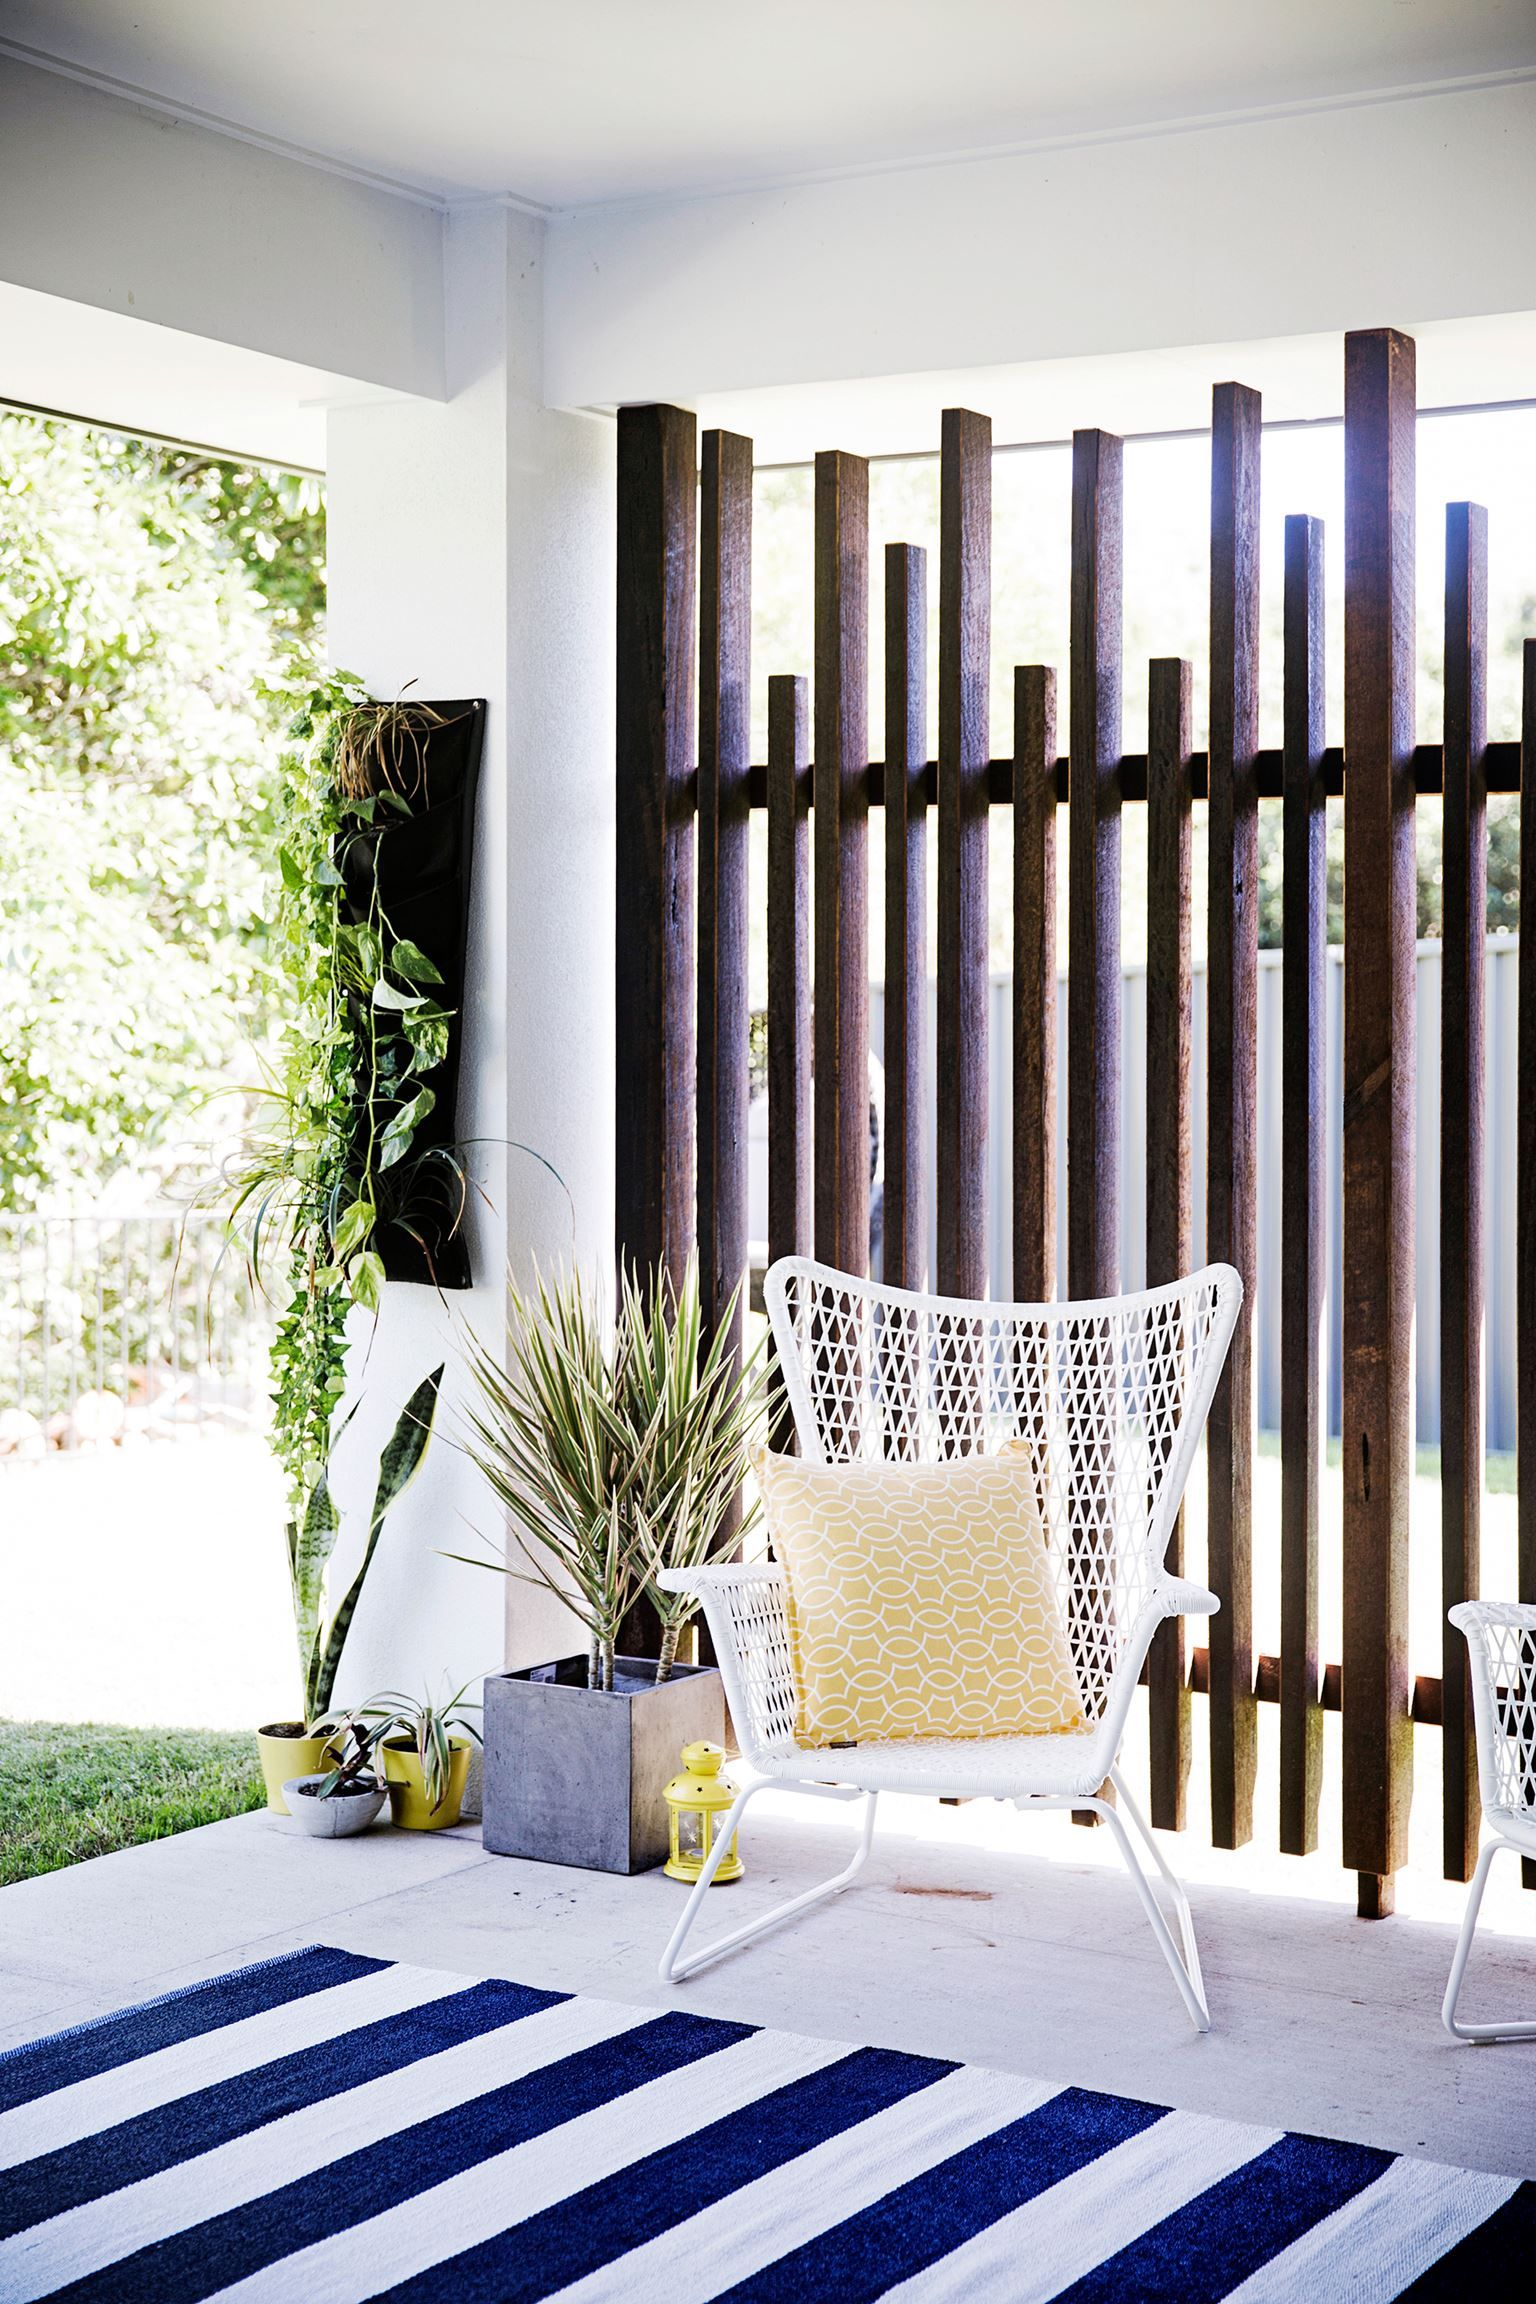 No Matter The Size Of Your Outdoor E You Can Create Privacy And Intimacy With Creative Budget Friendly Fence Options